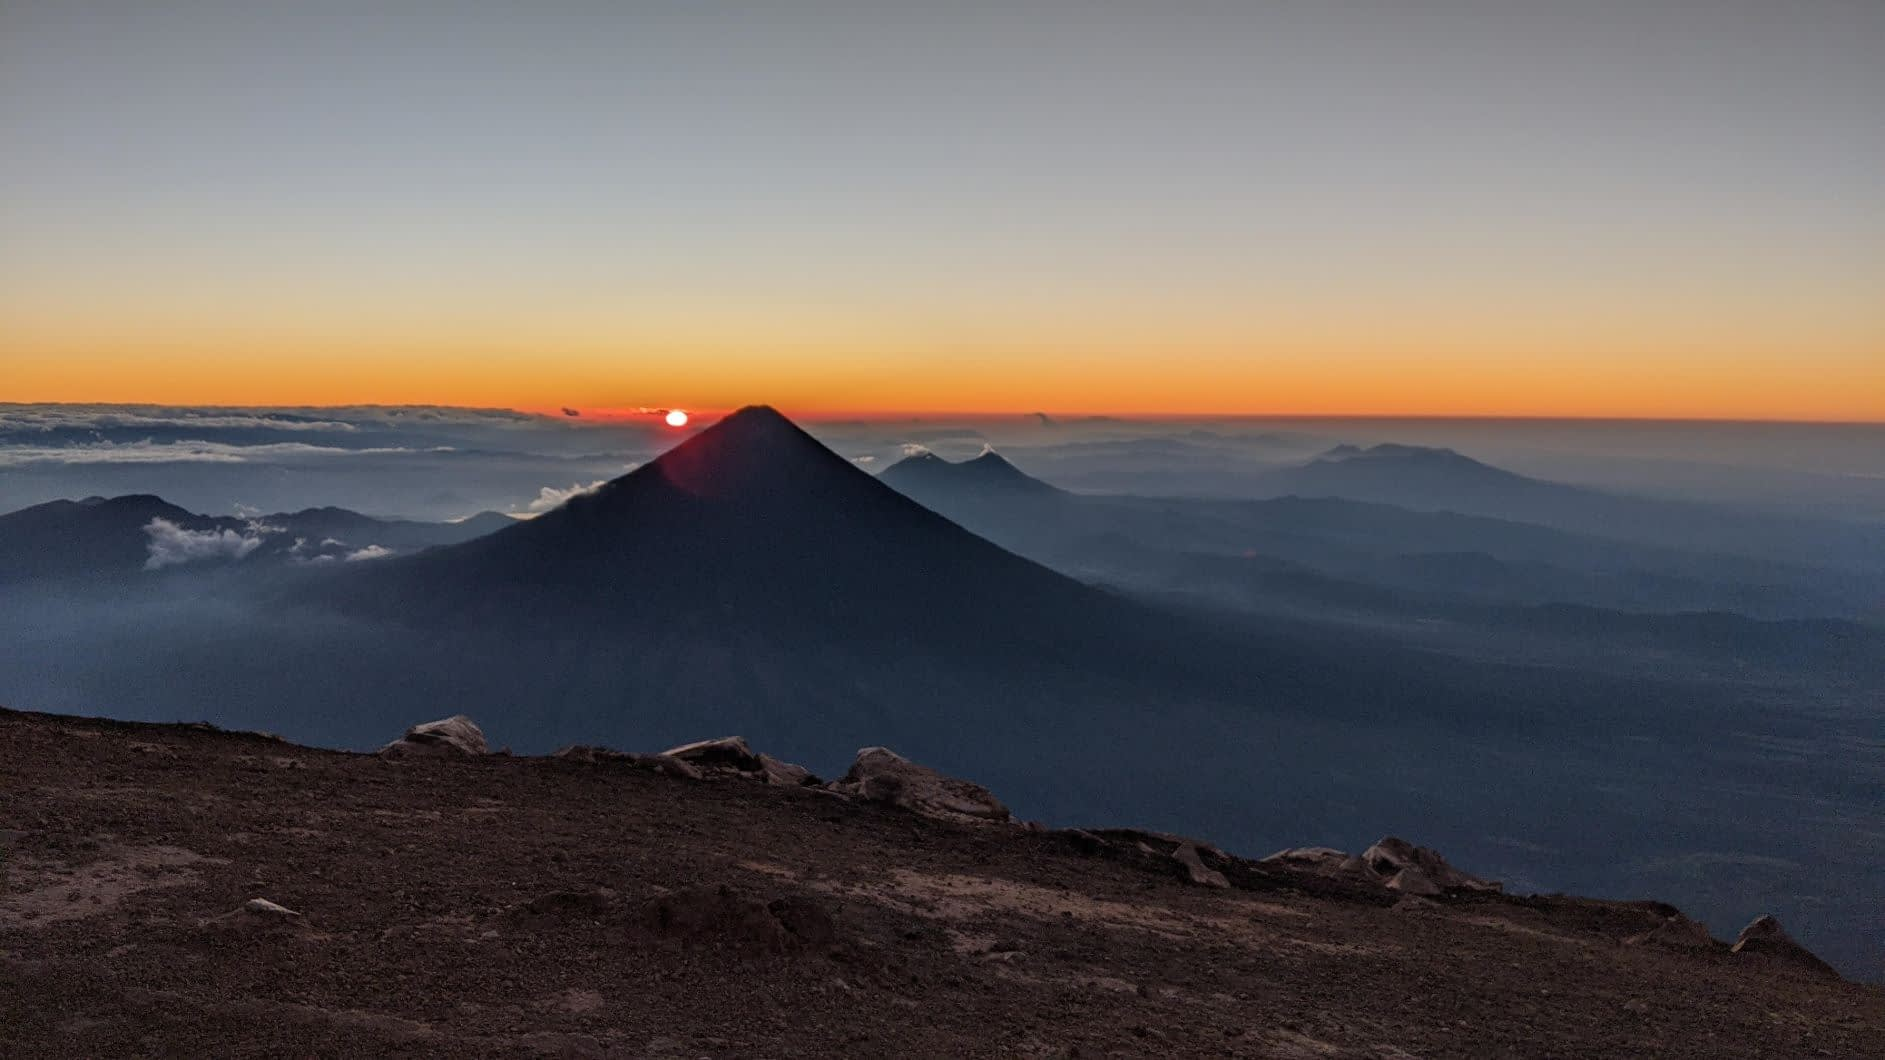 Sunrise from the top of acatenango volcano